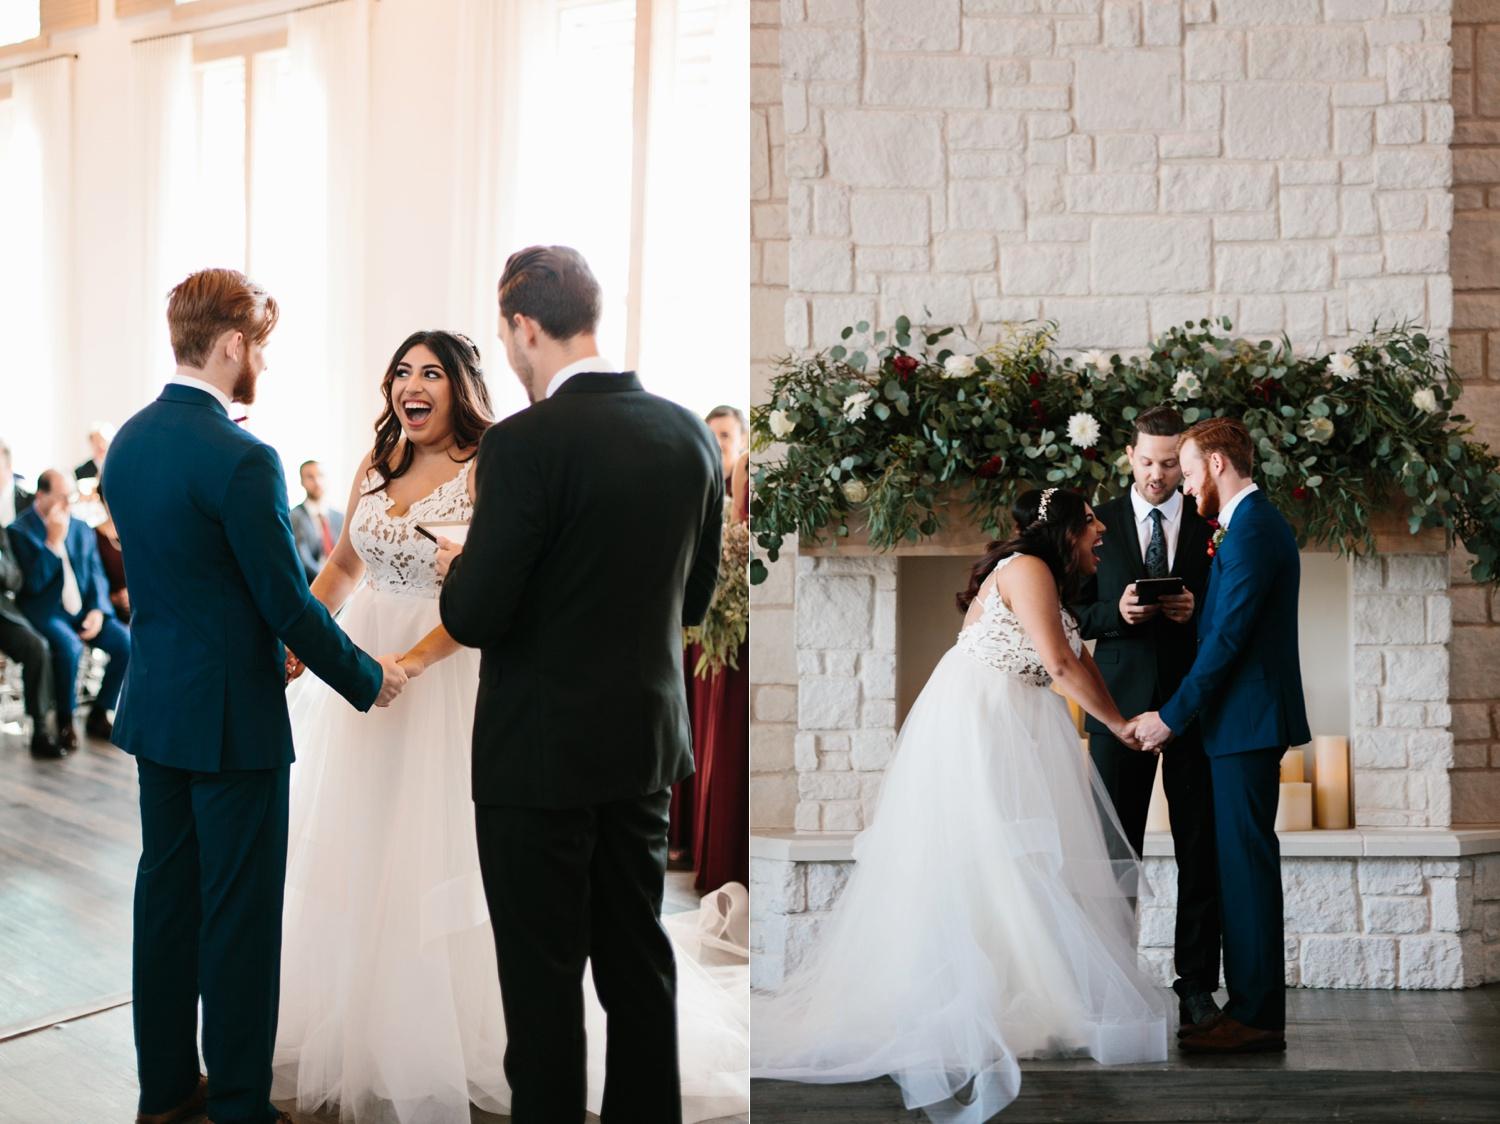 Grant + Lysette | a vibrant, deep burgundy and navy, and mixed metals wedding at Hidden Pines Chapel by North Texas Wedding Photographer Rachel Meagan Photography 106